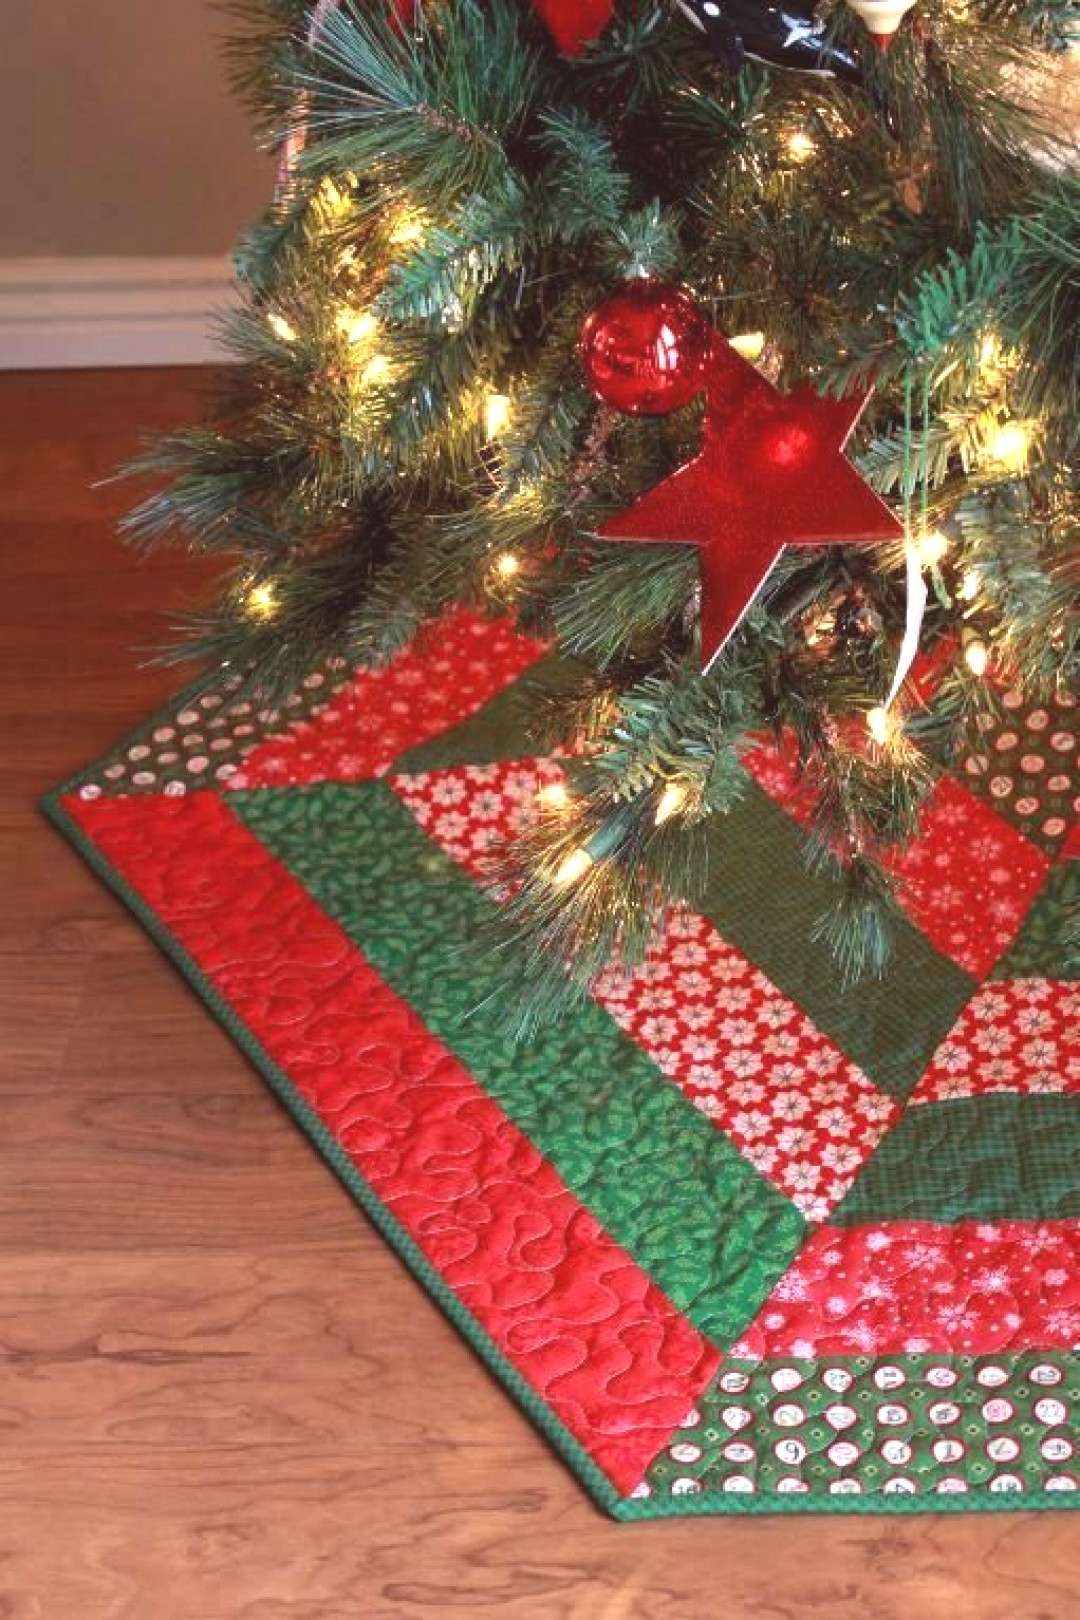 (7) Name Quilting Holly Jolly Christmas Tree Skirt Pattern